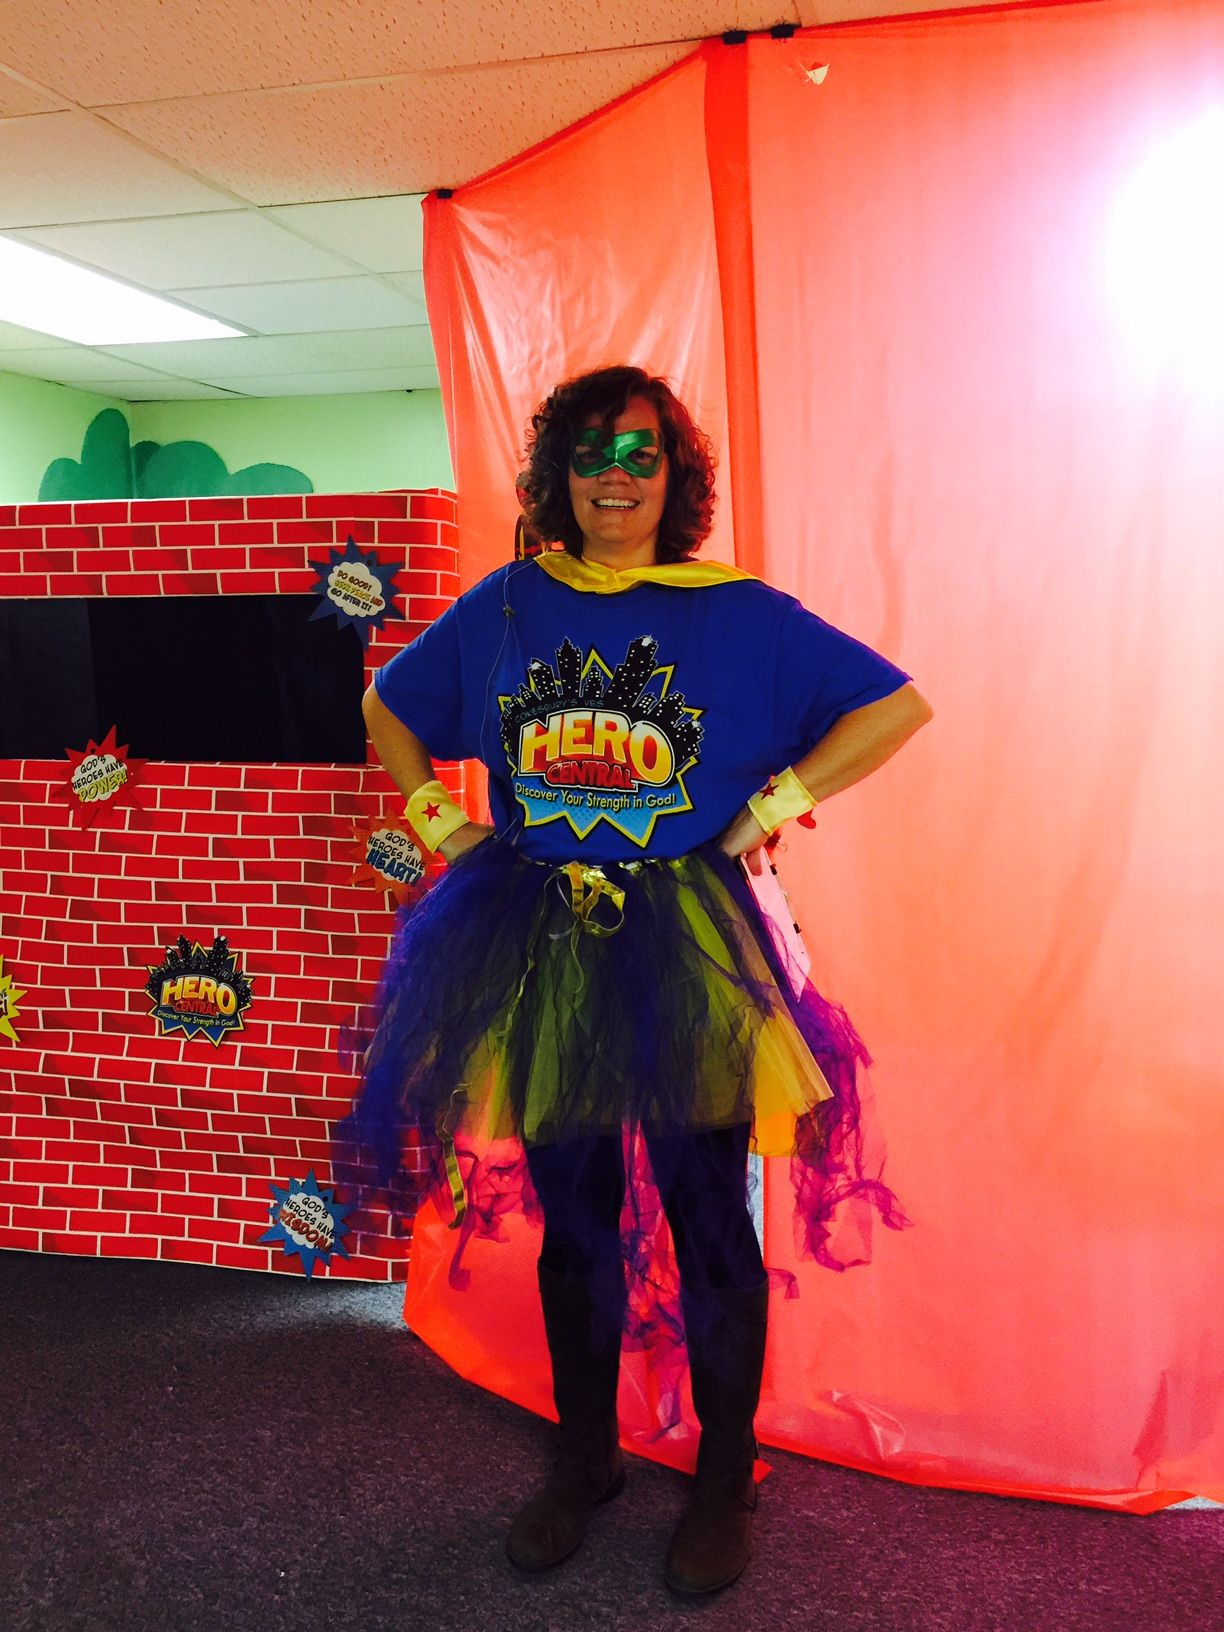 Hero tip keep your upcoming hero central vbs in mind this for Hero central vbs crafts